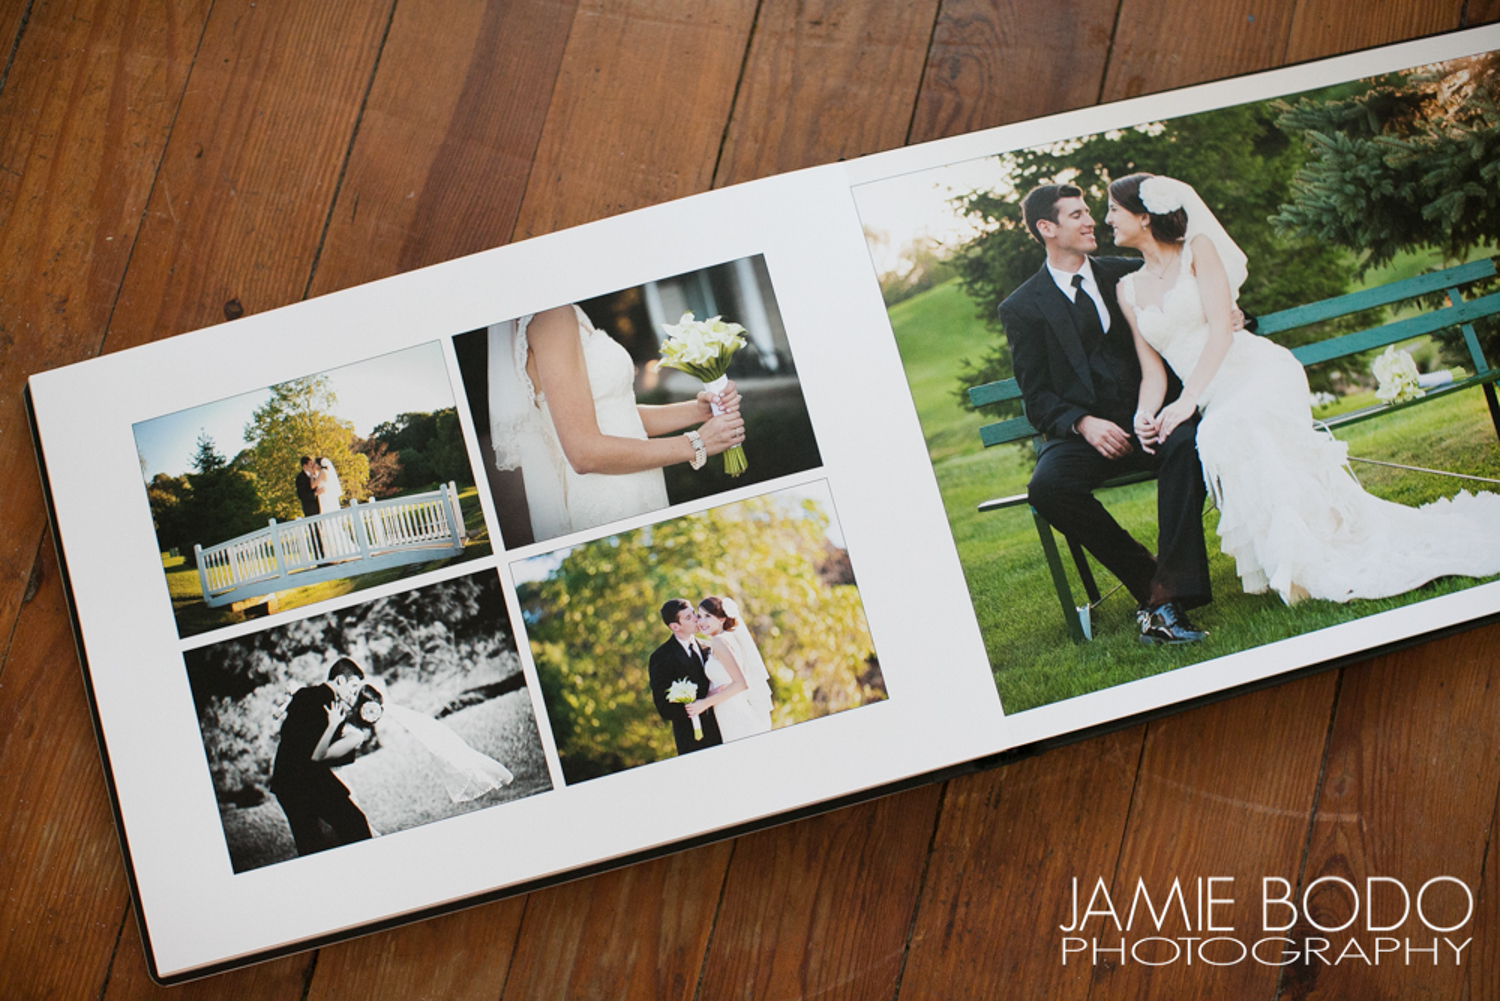 custom wedding albums jamie bodo photography. Black Bedroom Furniture Sets. Home Design Ideas